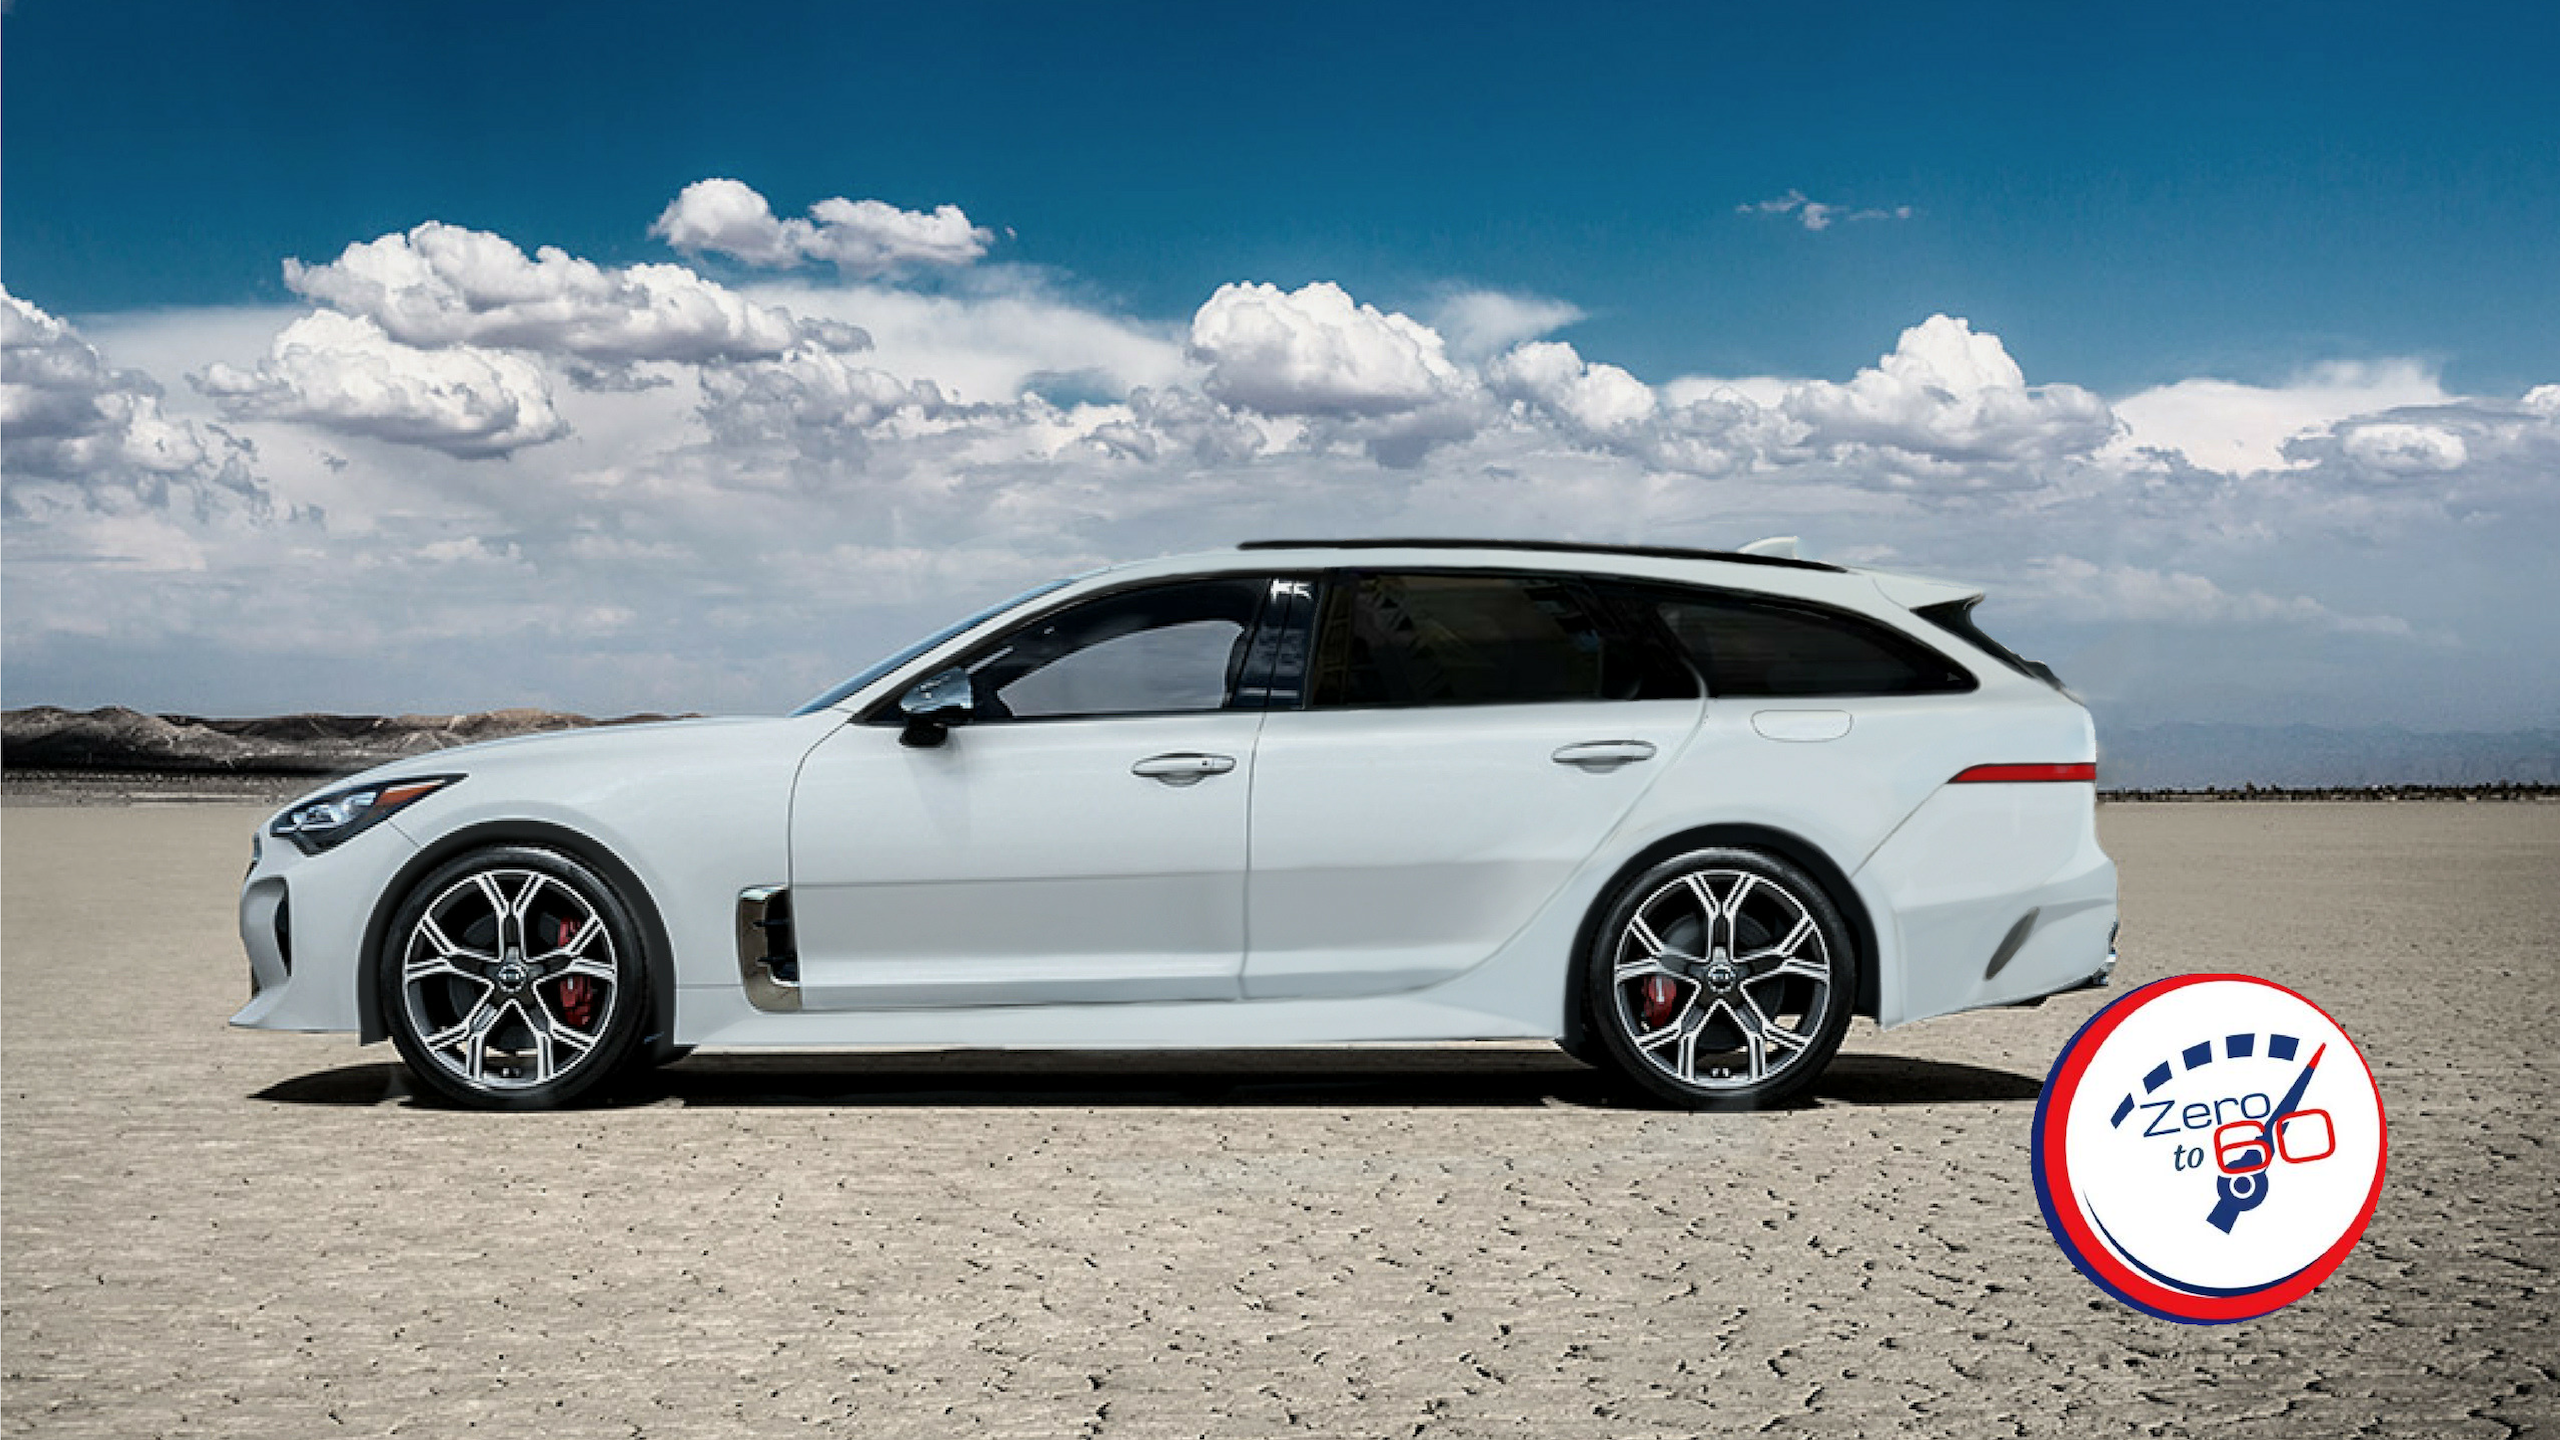 2020 Kia Stinger Gt Wagon Isn T She A Beaut Leith Cars Blog